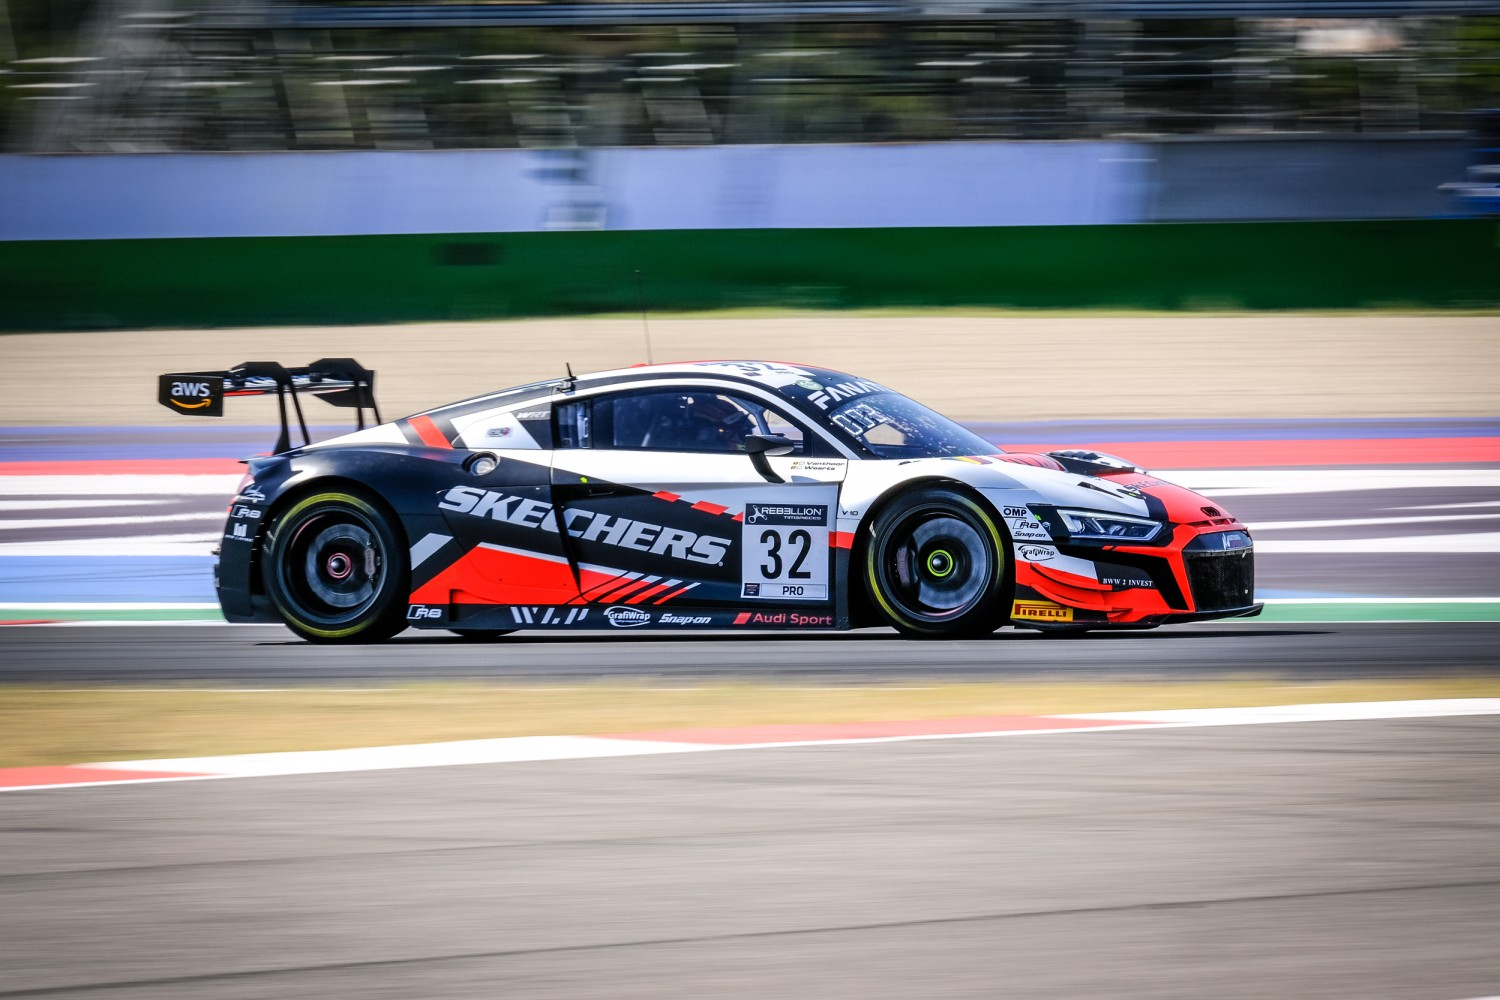 Weerts puts Team WRT on pole to continue Audi dominance at Misano